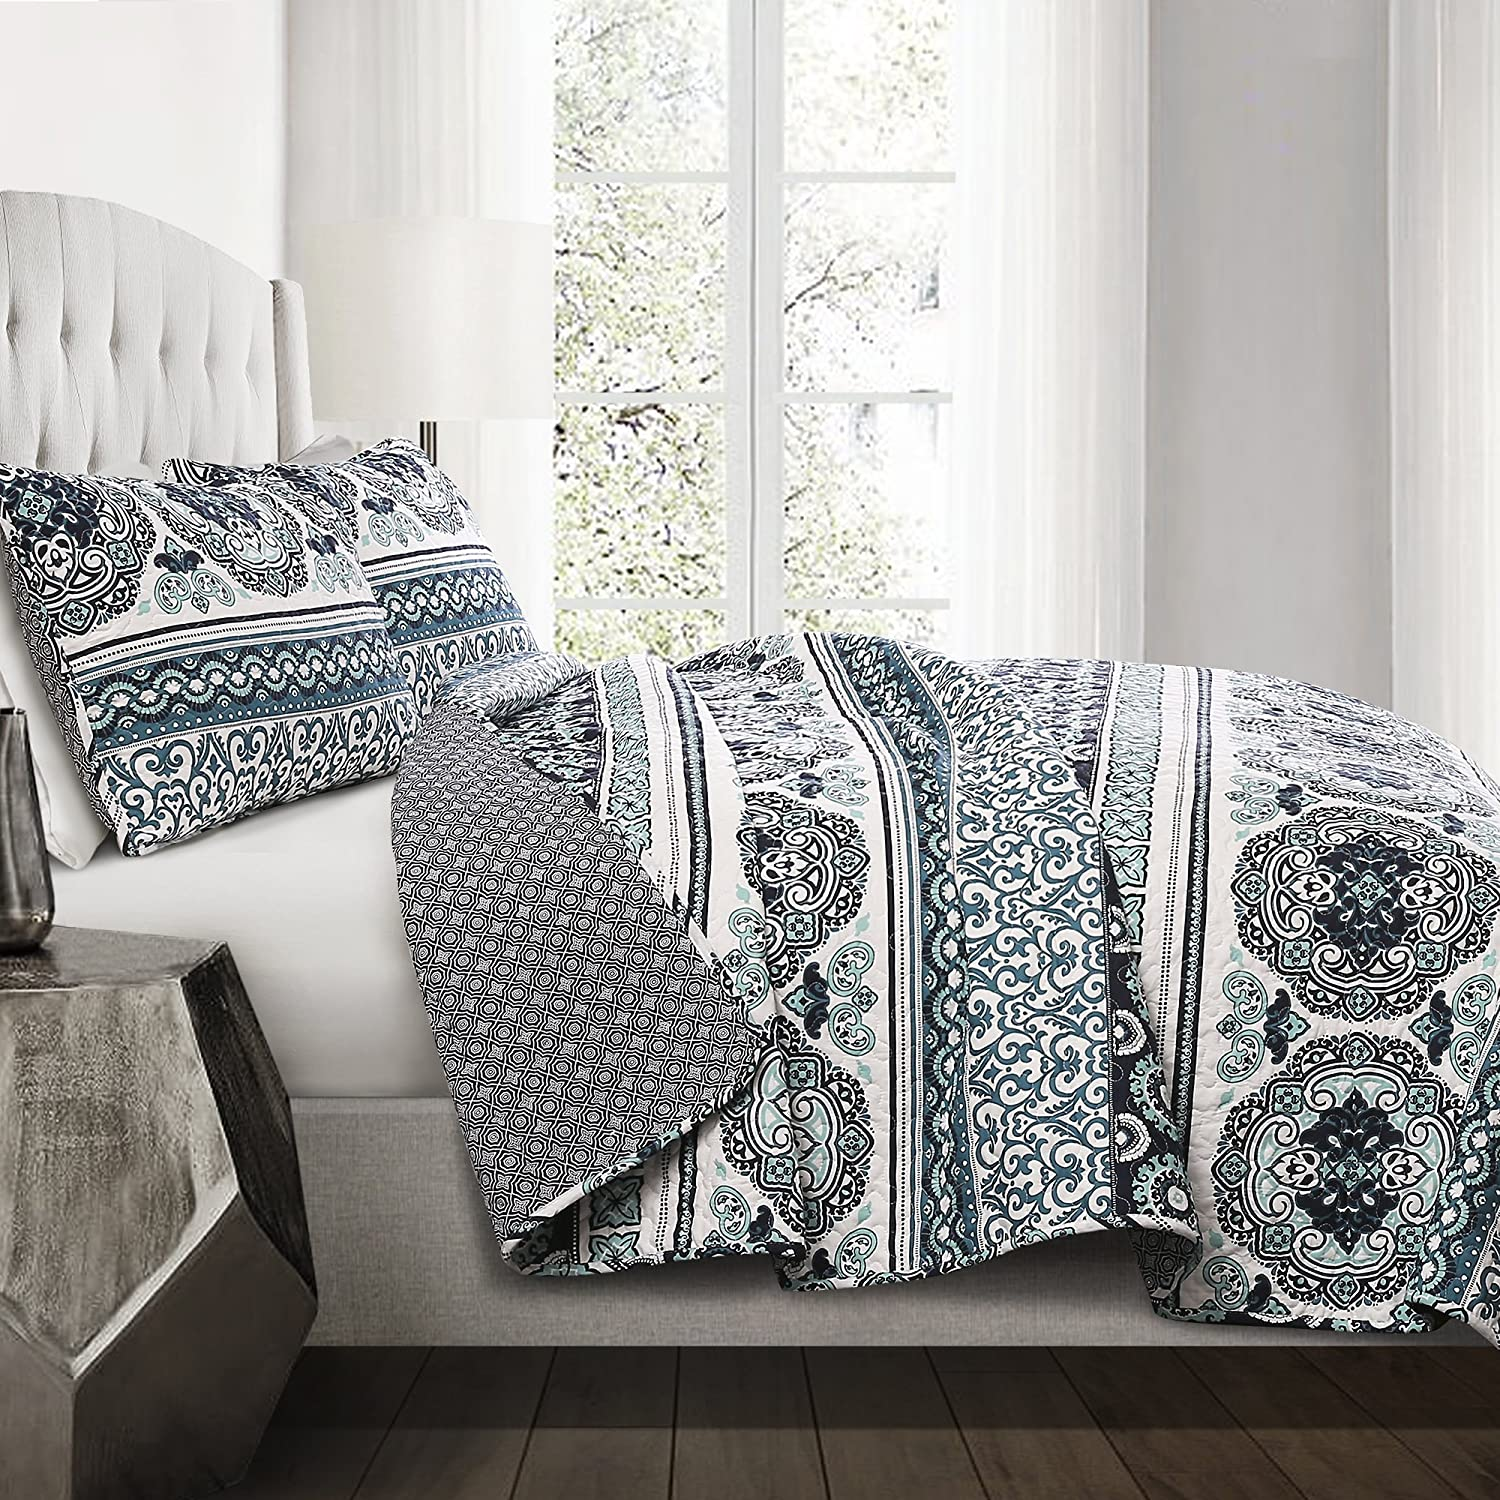 Lush Decor 3 Piece Nesco Quilt Set, King, Navy/Coral Triangle Home Fashions C32107P15-000